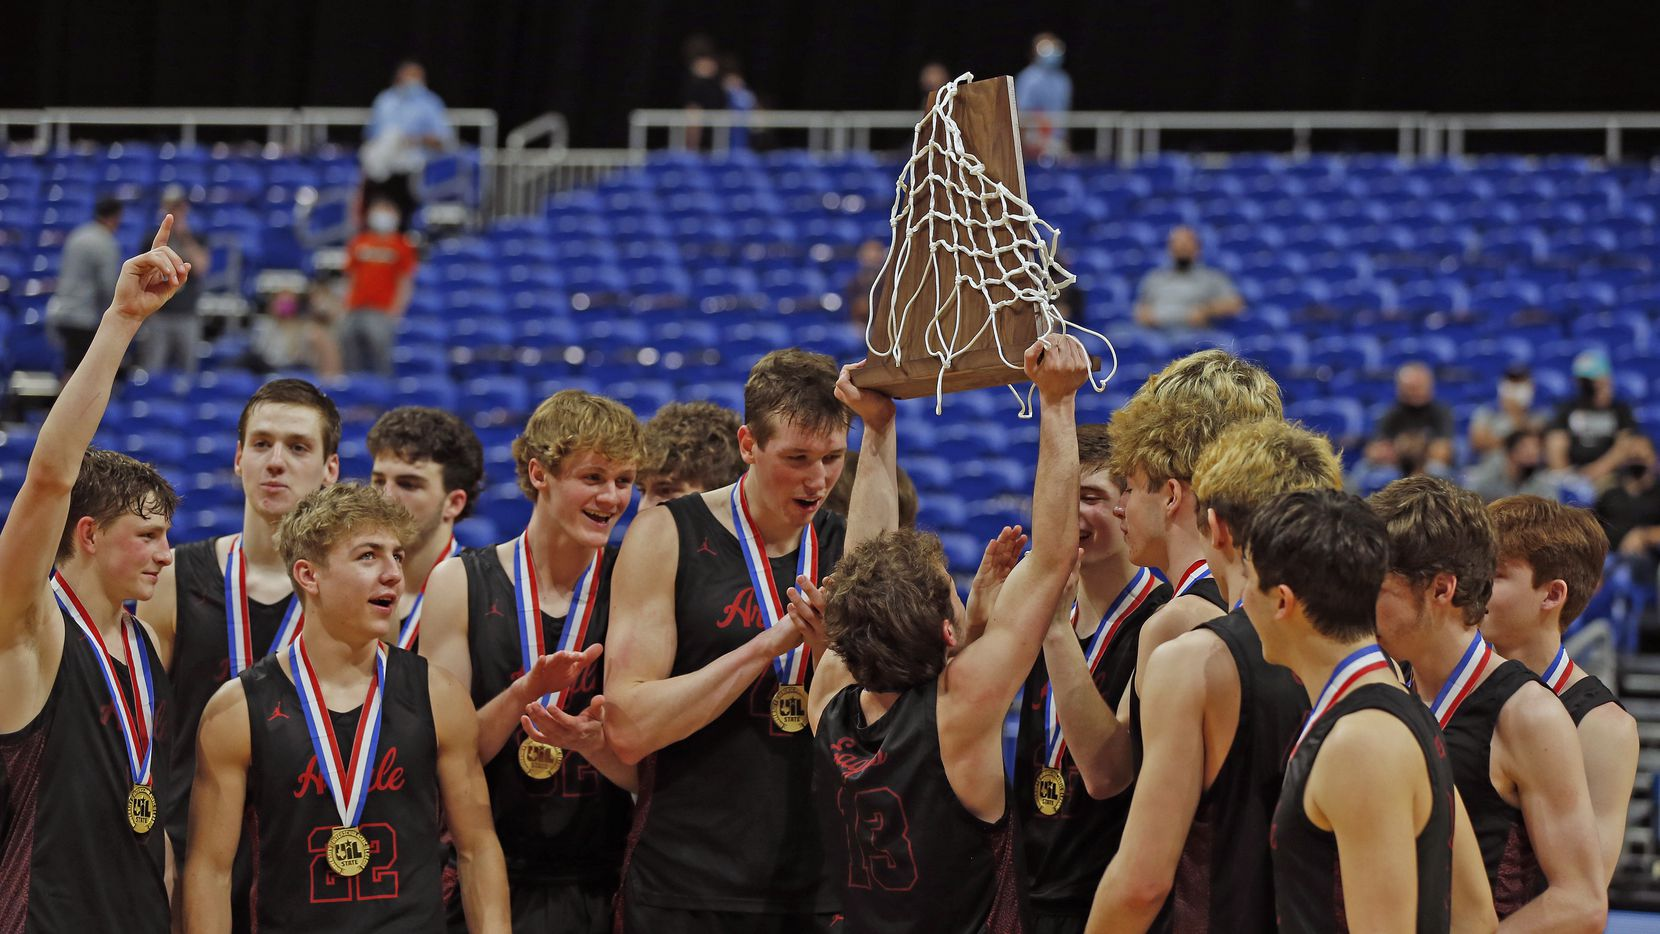 UIL boys Class 4A basketball state championship game between Argyle and Hargrave on Saturday, March 13, 2021 at the Alamodome.